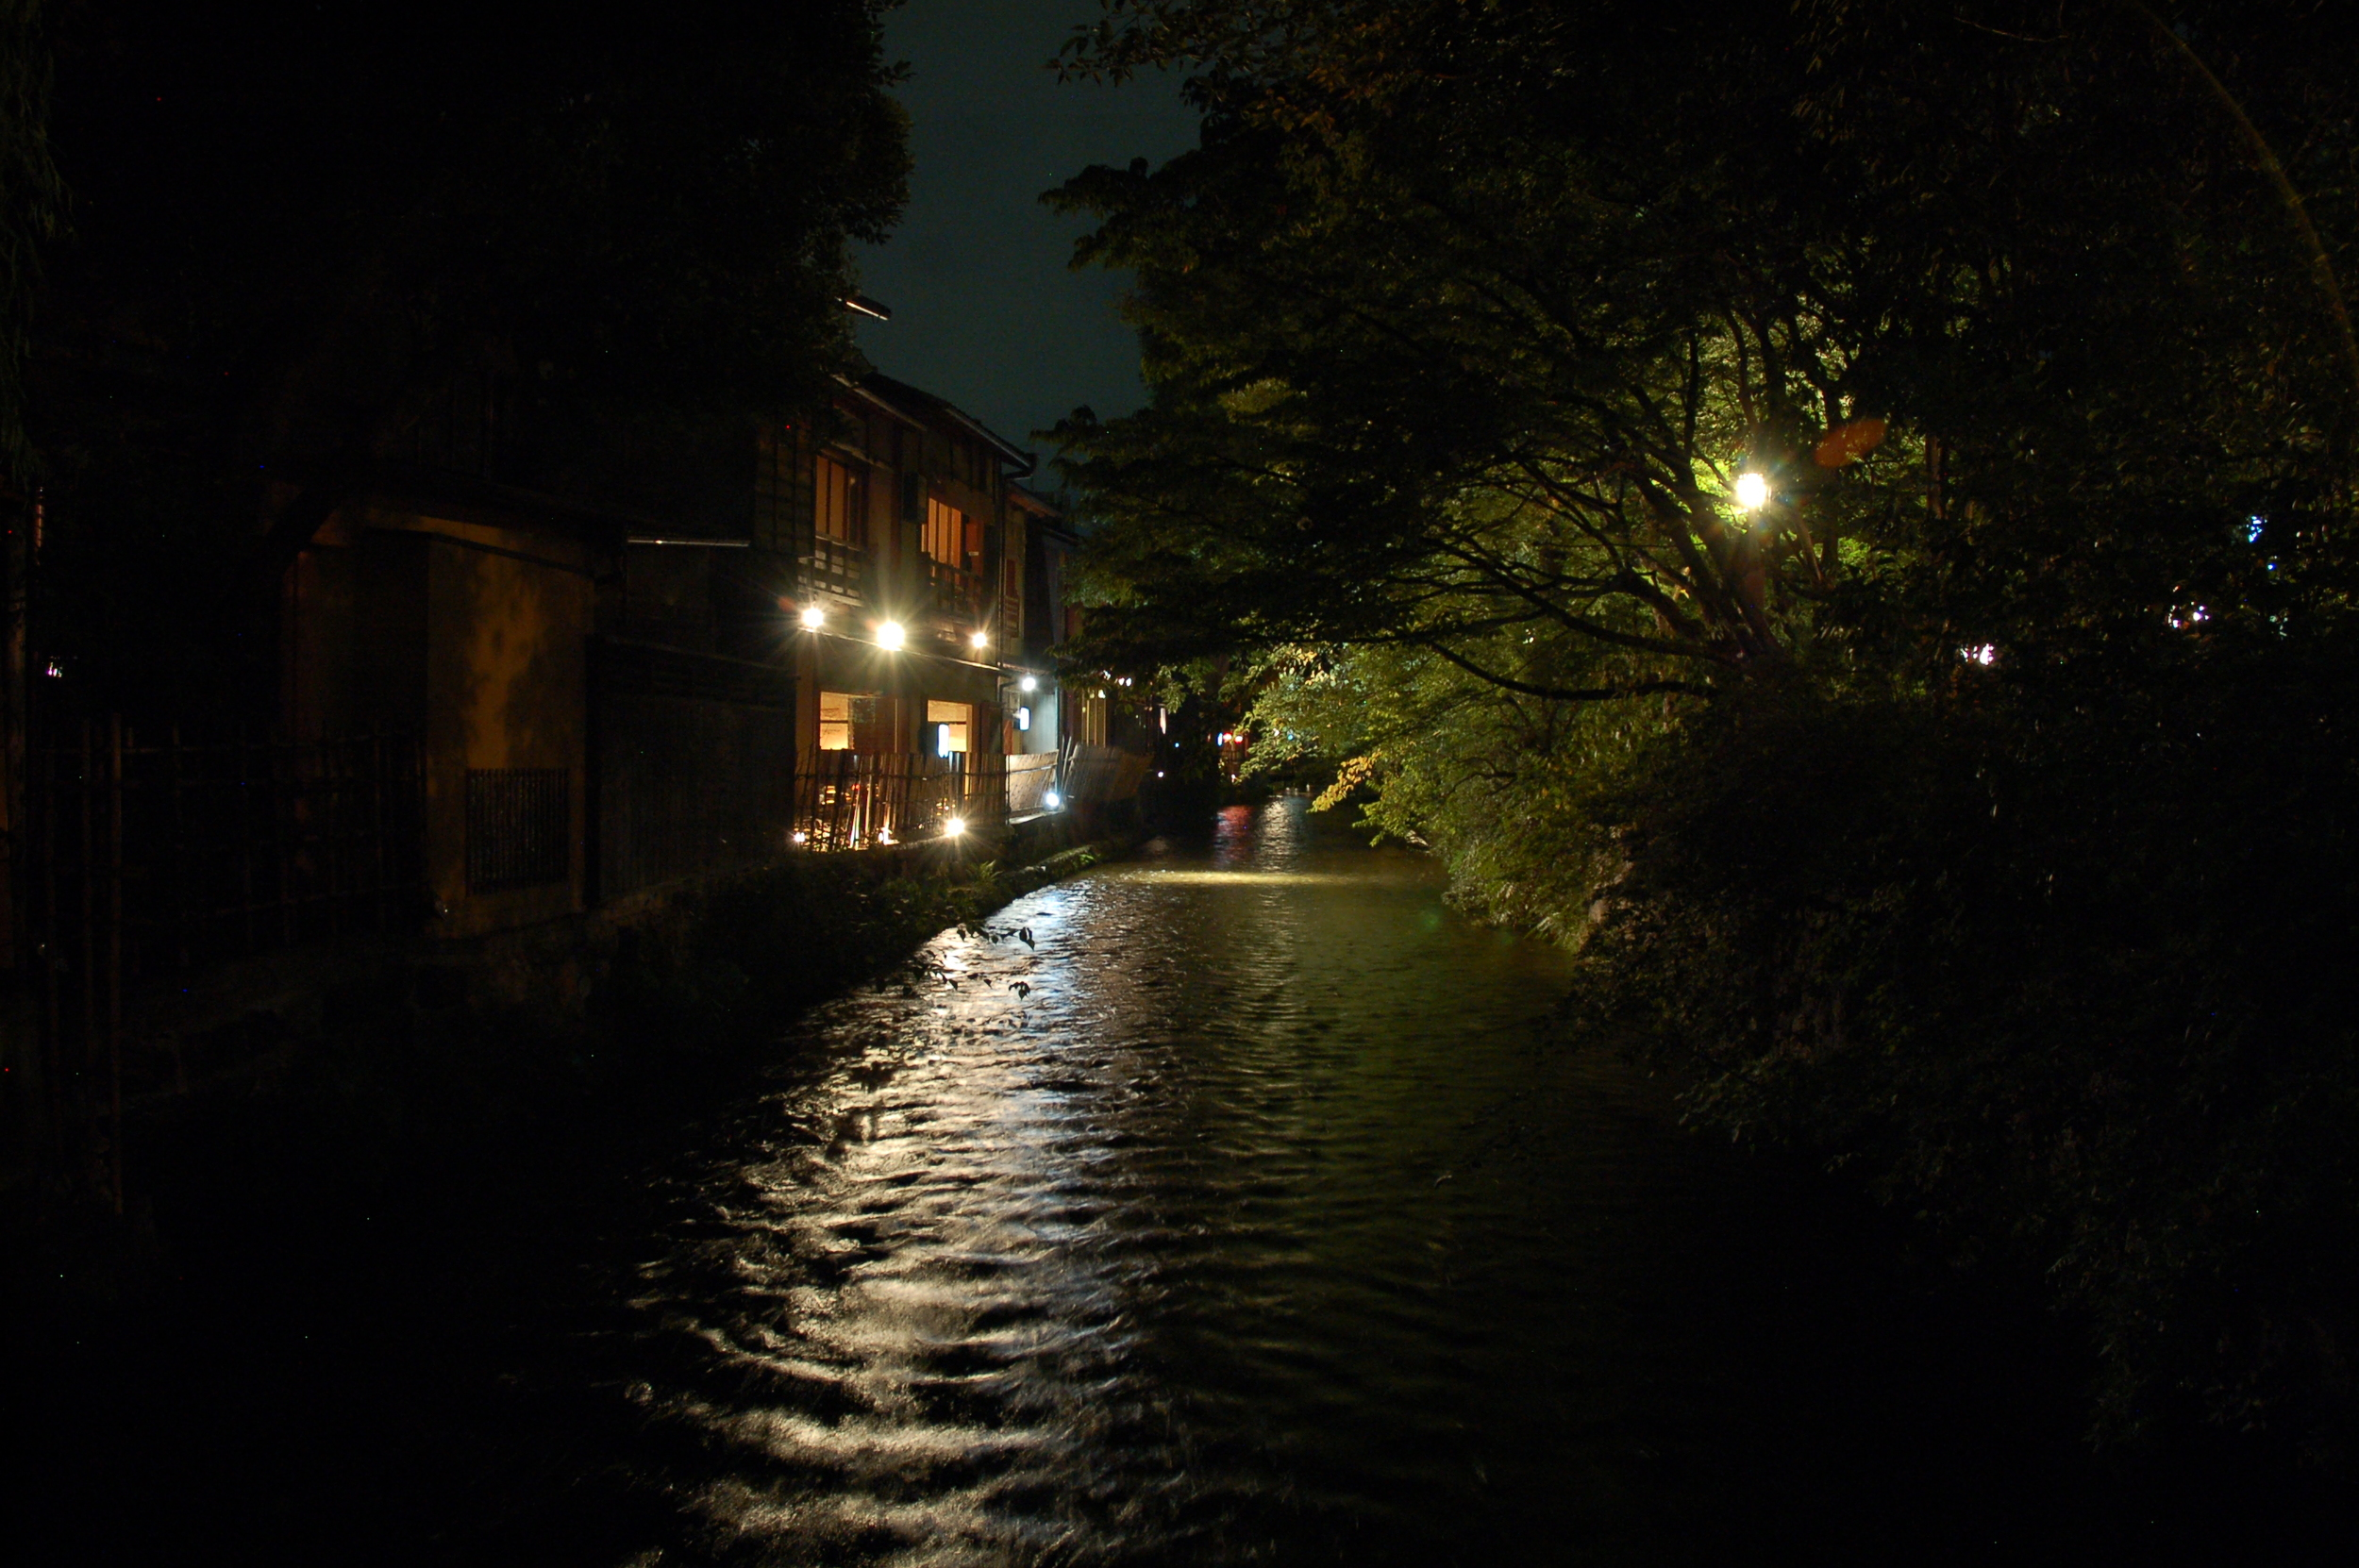 The waters of the Takasegawa trickle behind the restaurants and bars in the Pontocho area